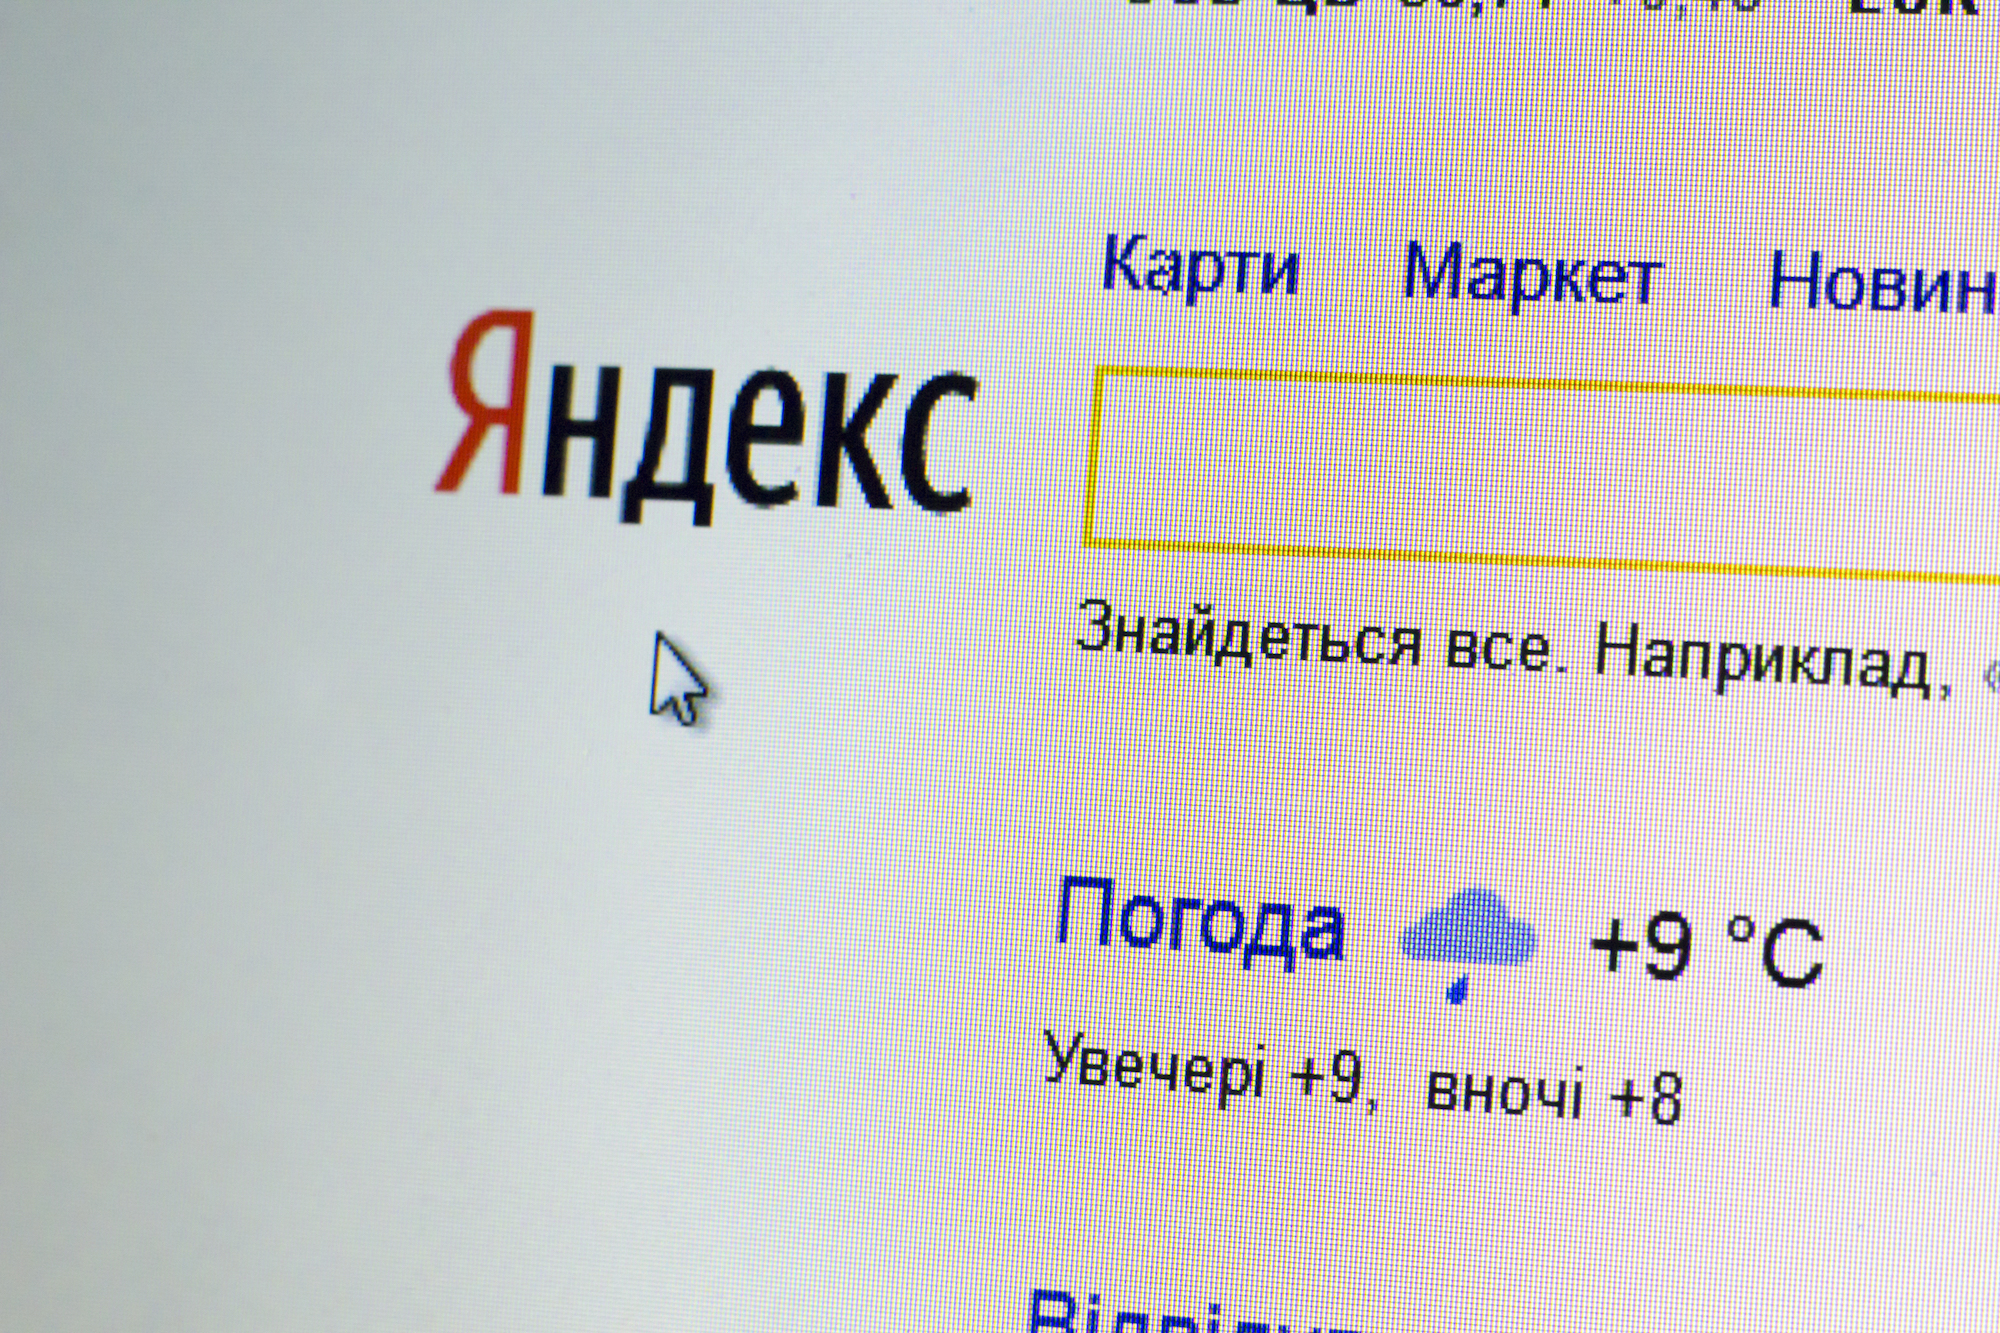 All about the algorithms of Yandex